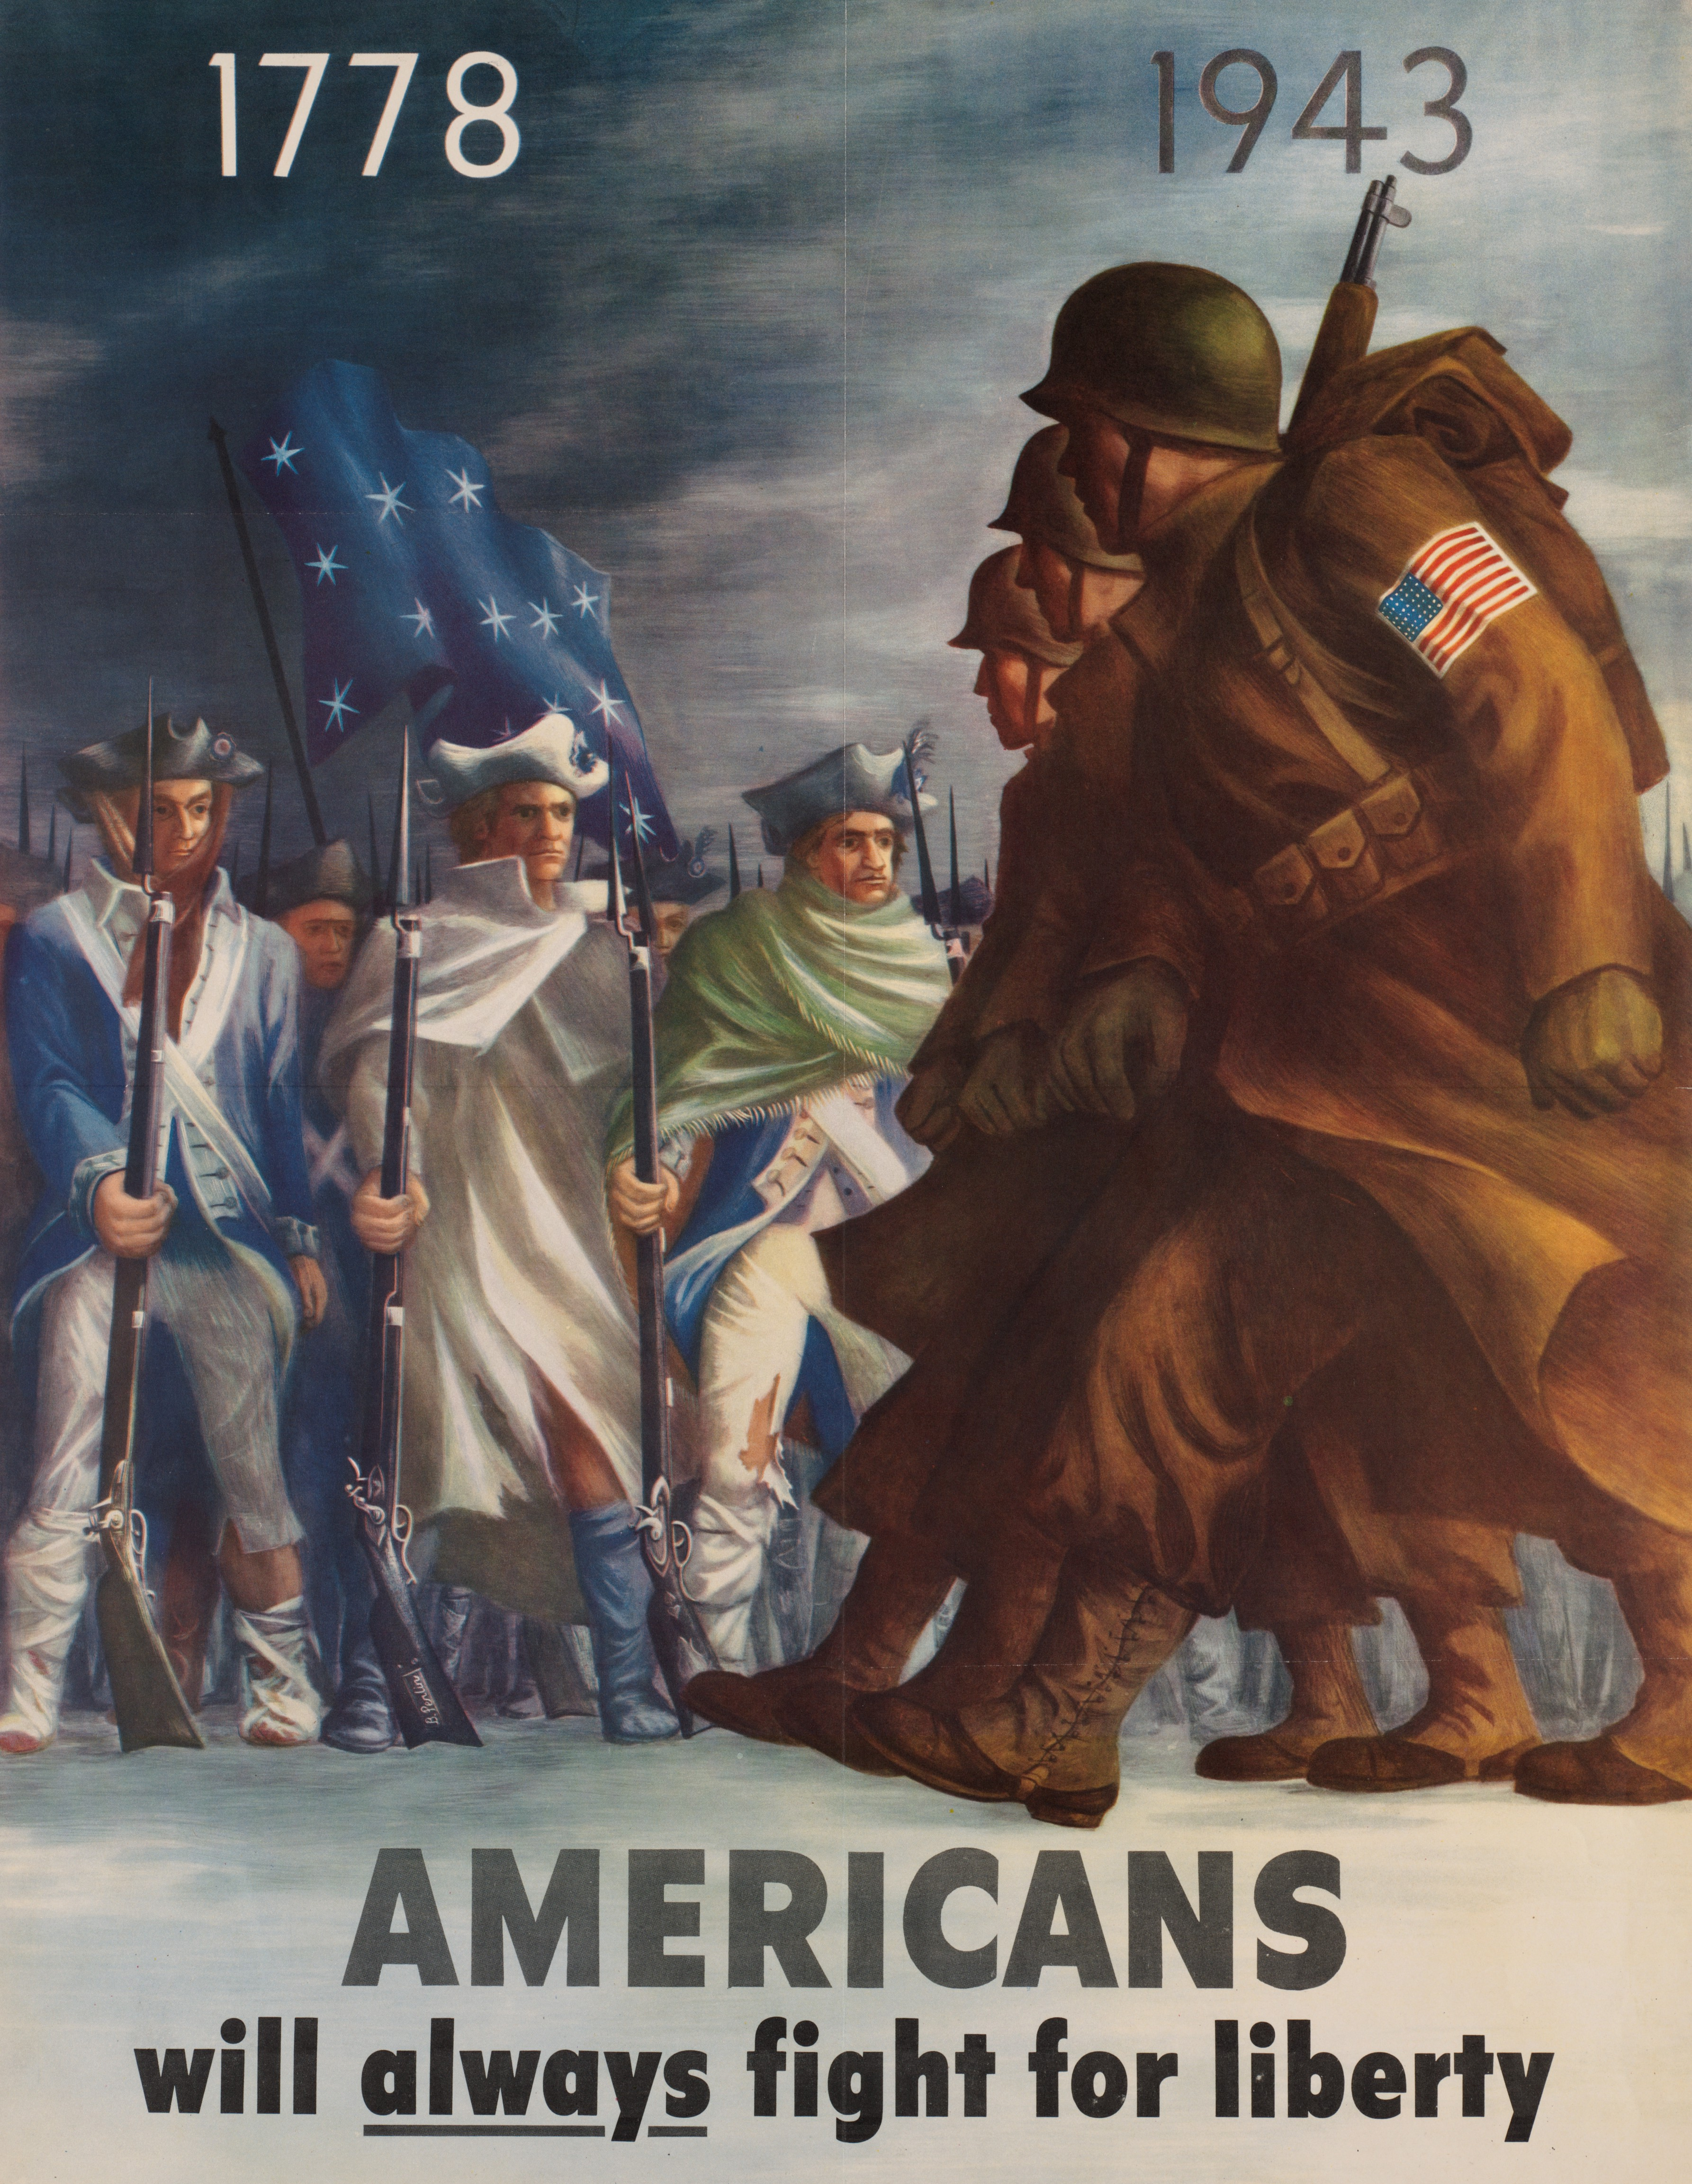 World War 2 poster: Americans will always fight for liberty